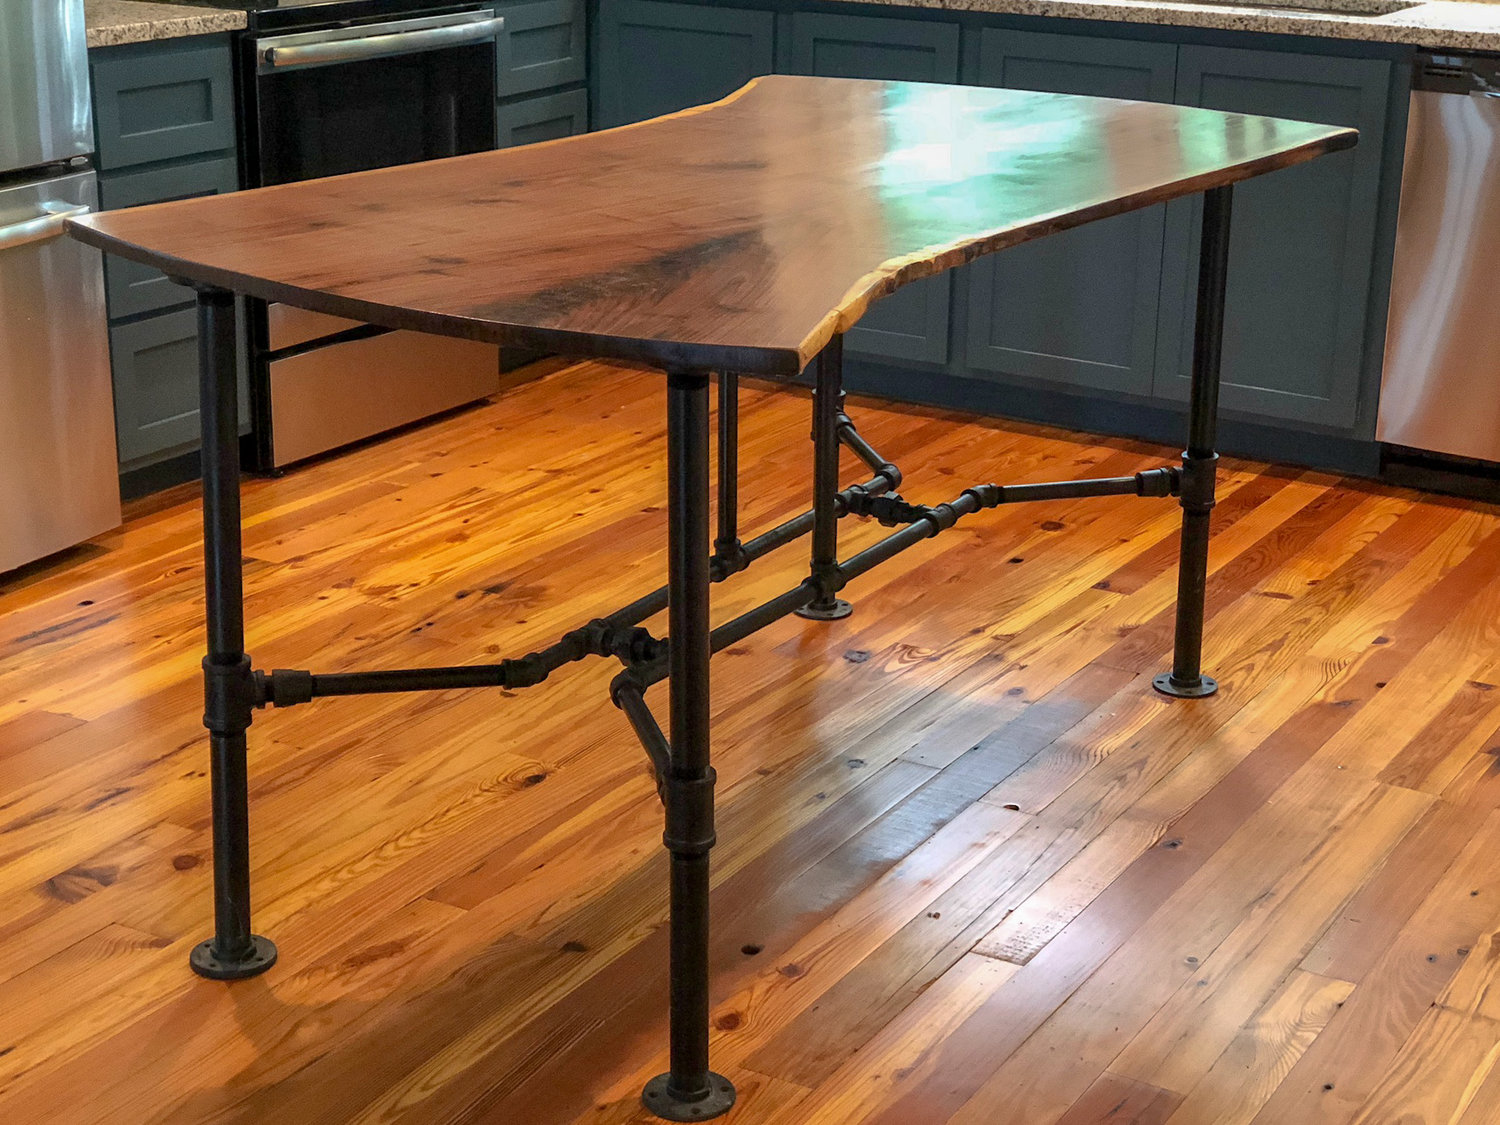 Live Edge Walnut Bookmatched Kitchen Island with Black Pipe ... Iron Pipe Kitchen Island Ideas on fiberglass kitchen island, framing a kitchen island, stainless steel kitchen island, pvc kitchen island, aluminum kitchen island, bronze kitchen island, galvanized kitchen island, brick kitchen island, boos kitchen island, cement kitchen island, copper kitchen island, brass kitchen island, wood kitchen island,